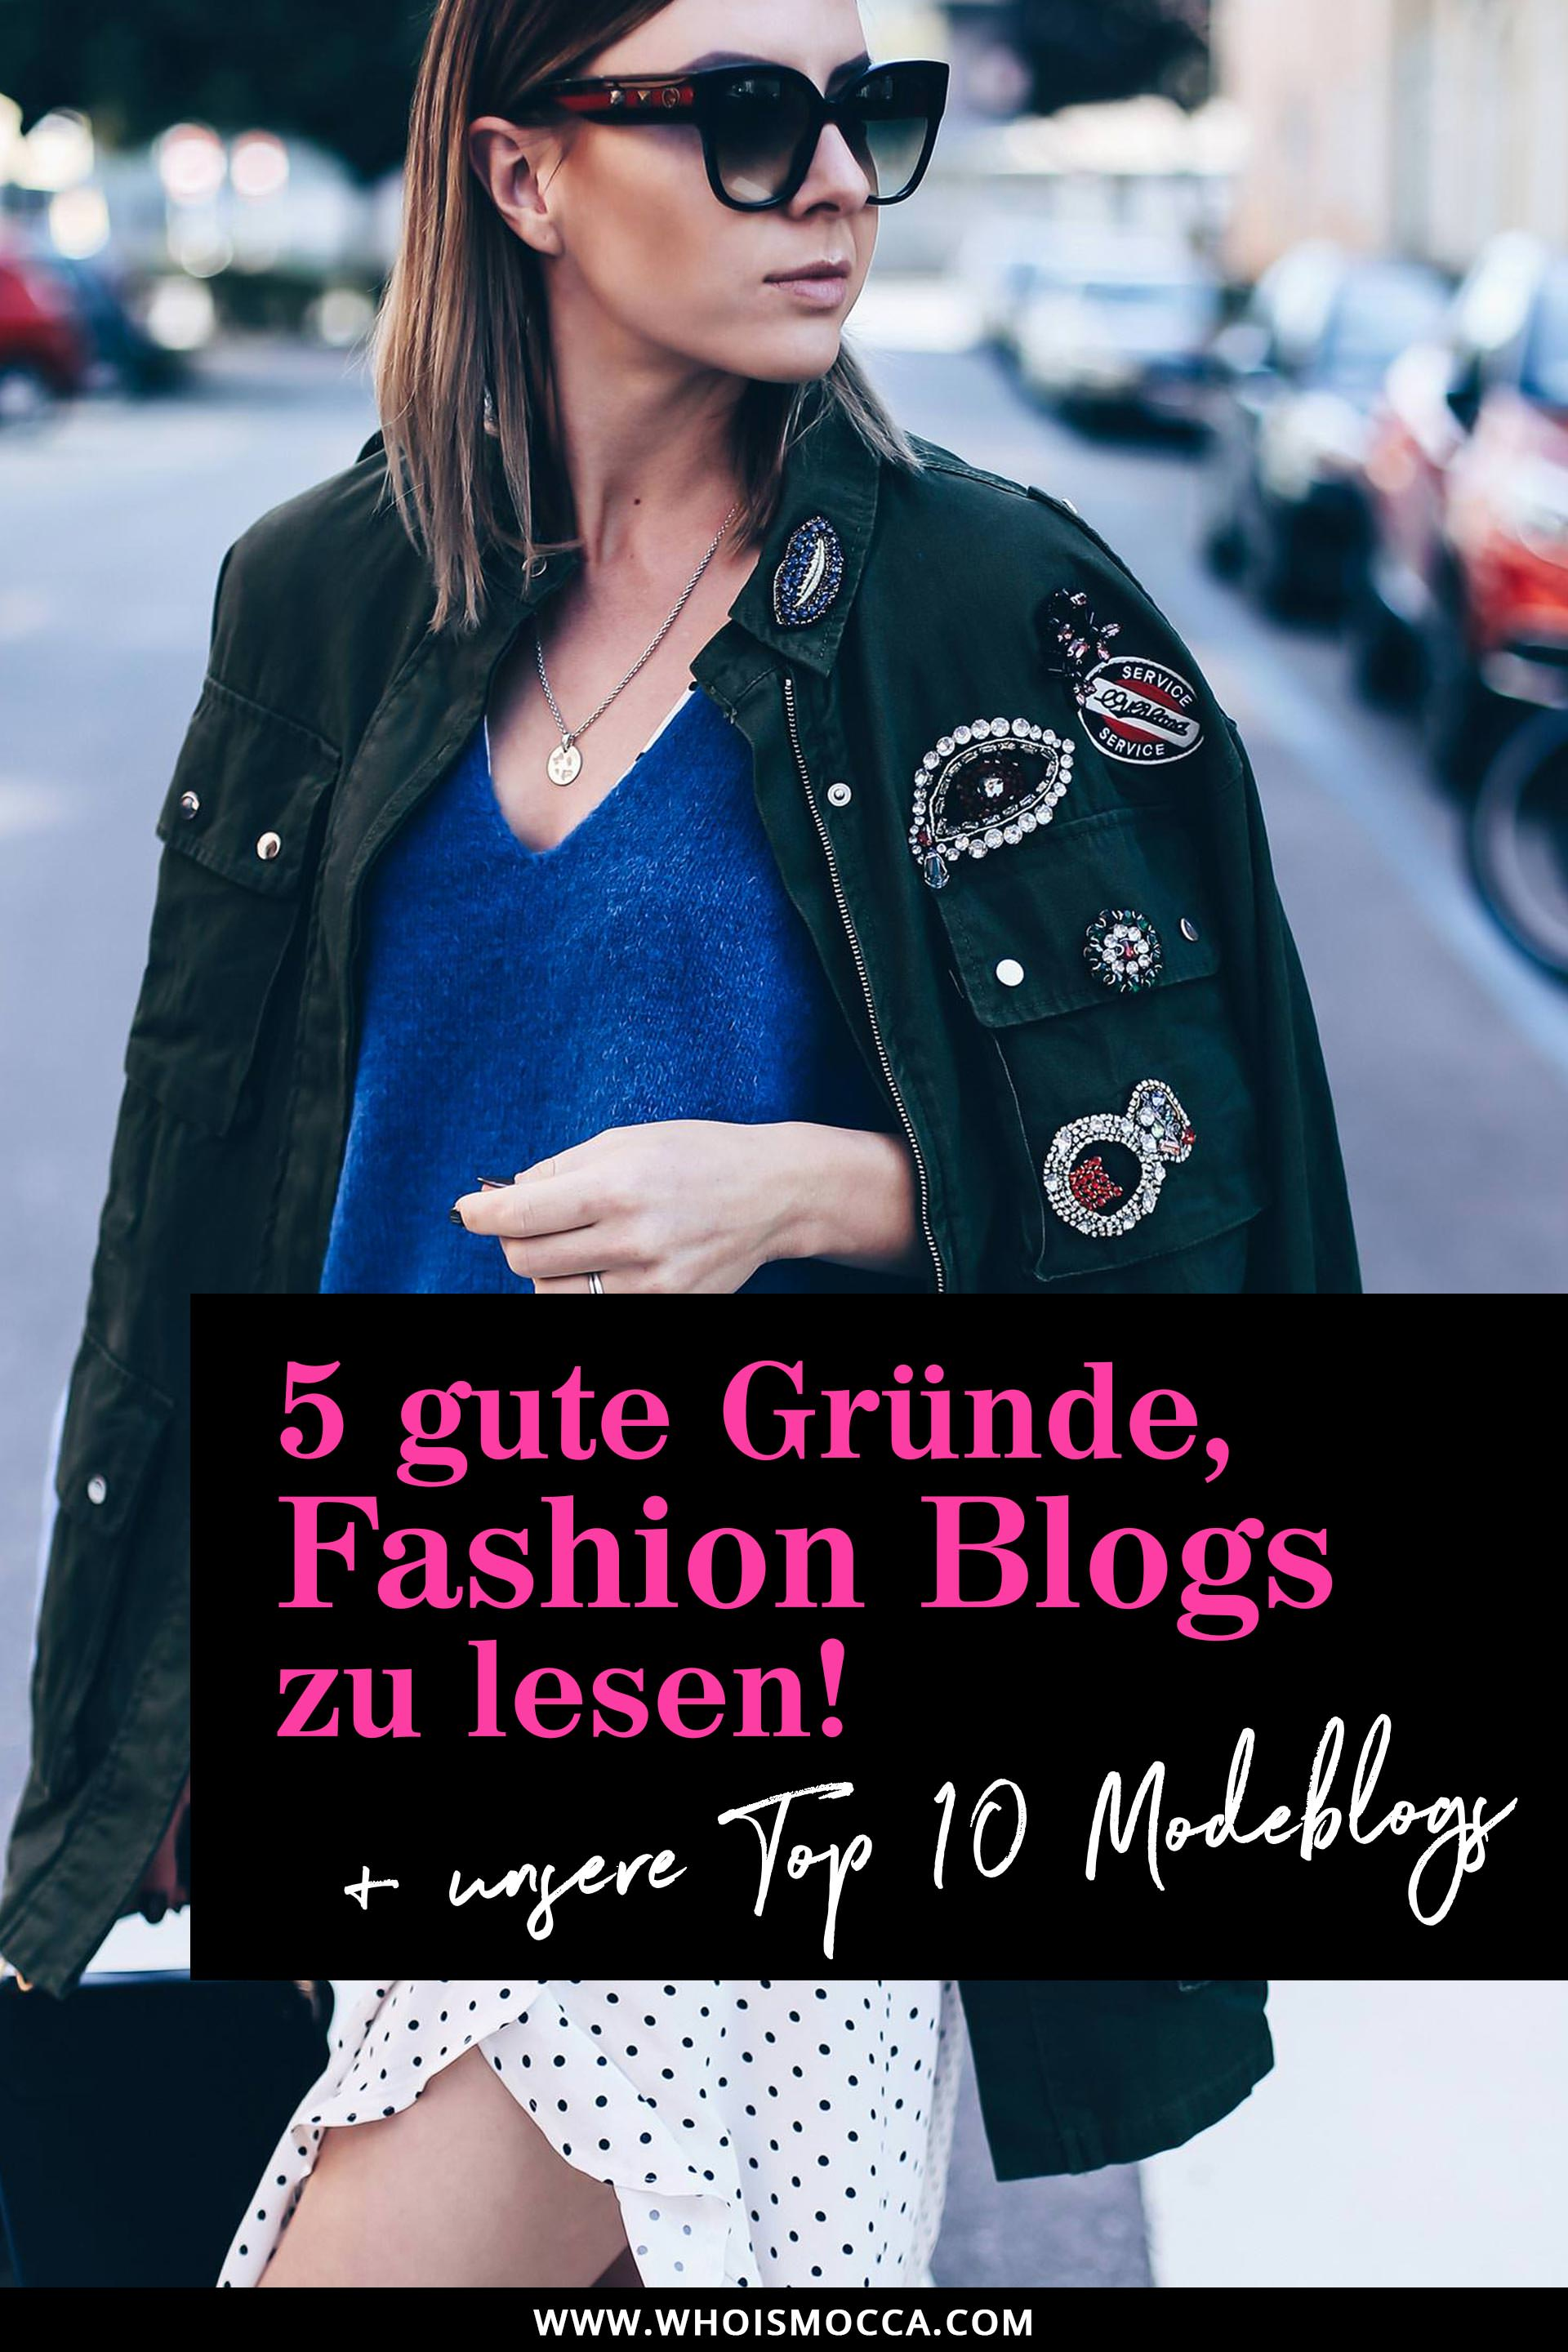 5 gute Gründe, Fashion Blogs zu lesen, unsere Top 10 Modeblogs, Top German and Austrian Fashion Bloggers, Outfit Blog, Style Blog, Outfit Ideen, Modetrends, Trendreports, www.whoismocca.com